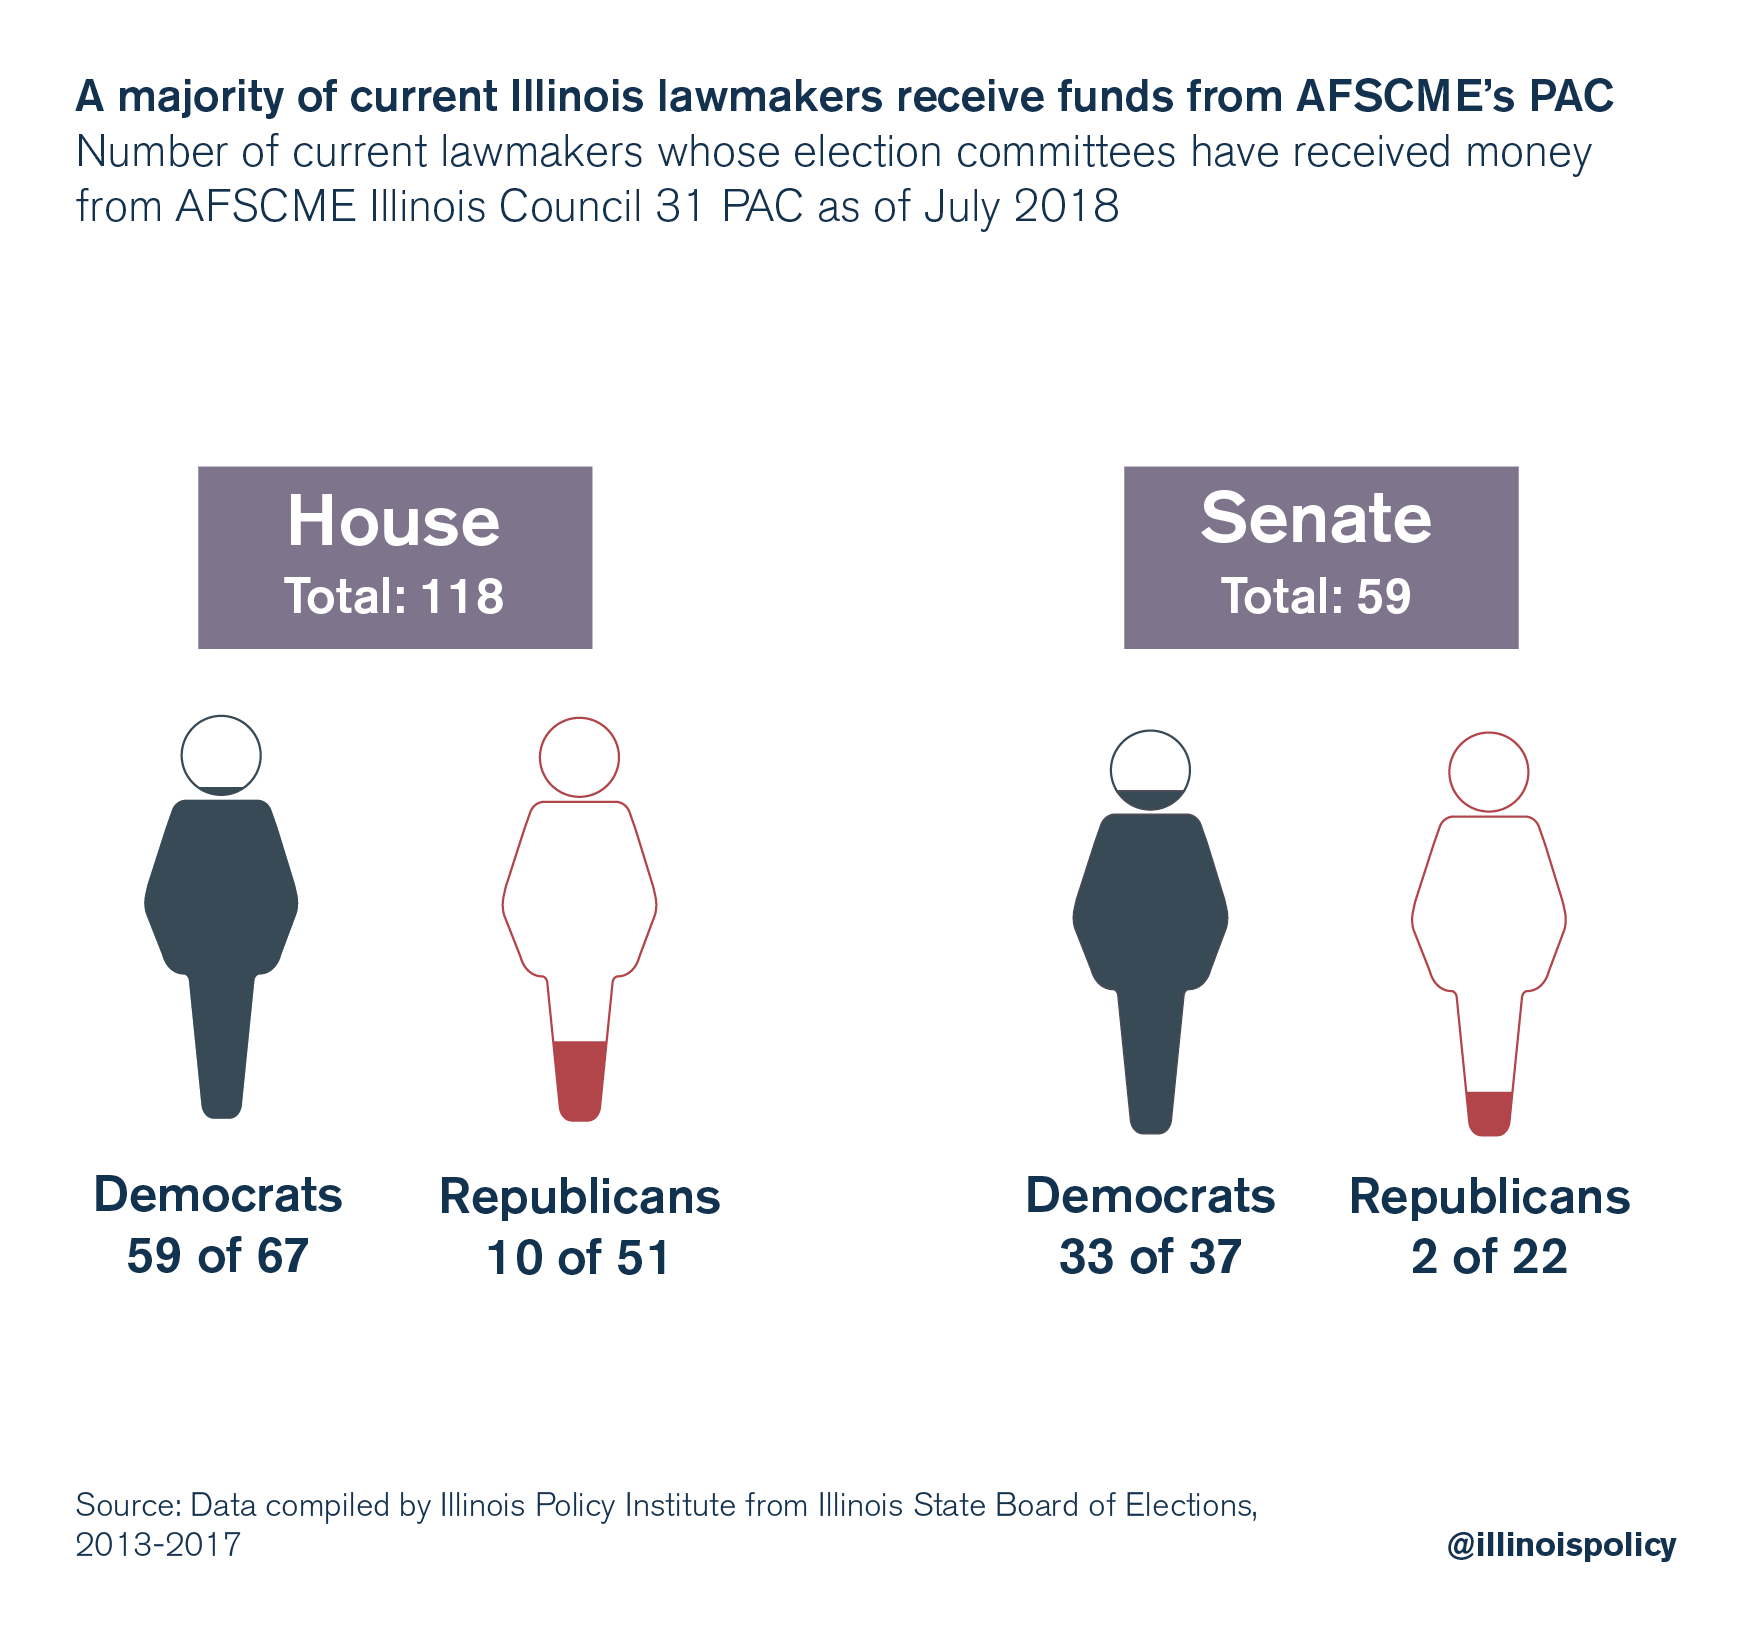 A majority of current lawmakers receive funds from AFSCME PAC's